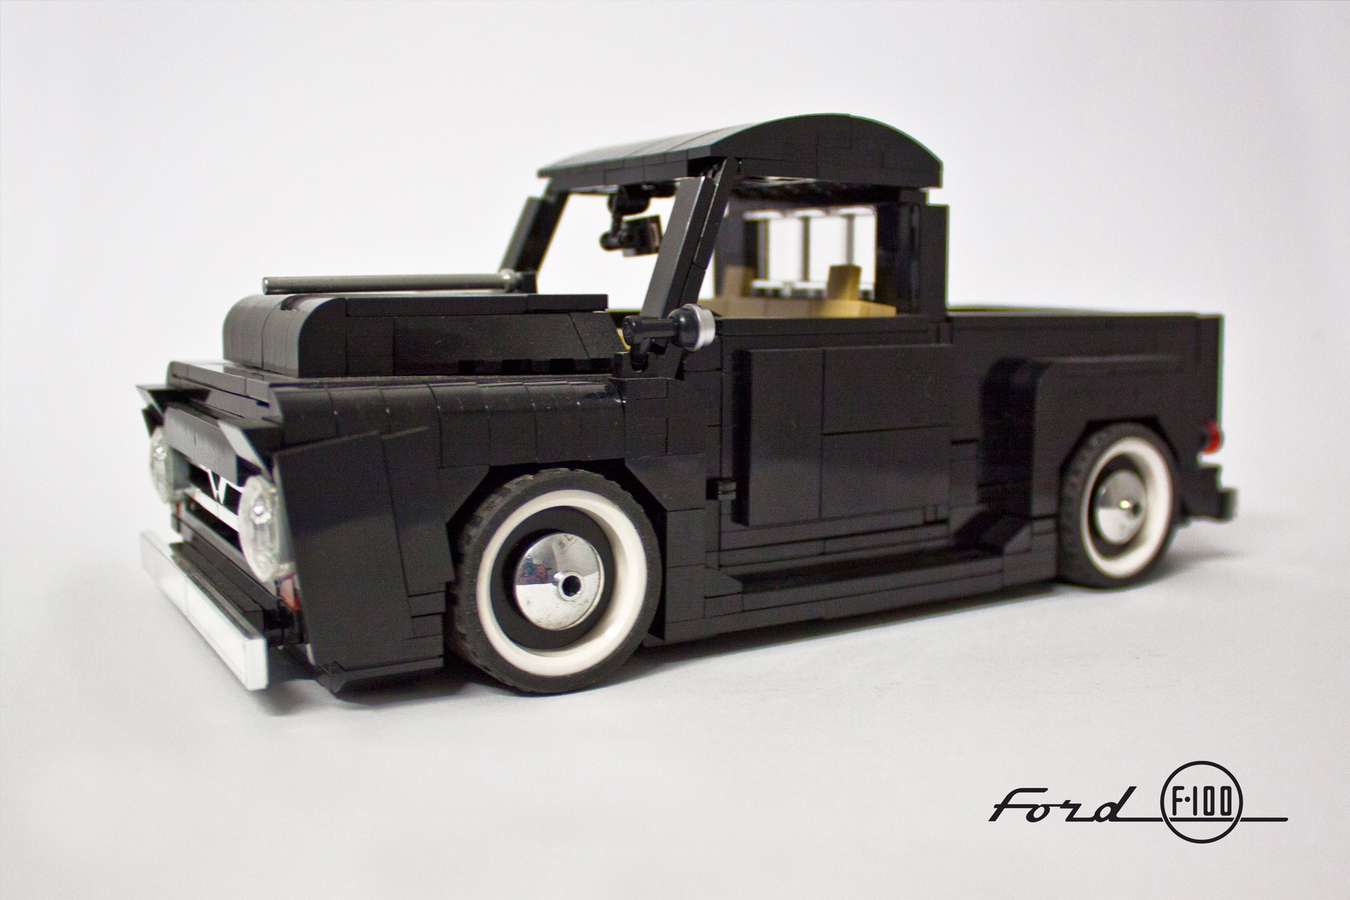 Lego Ideas Product Ford F 100 118 1955 F100 Project